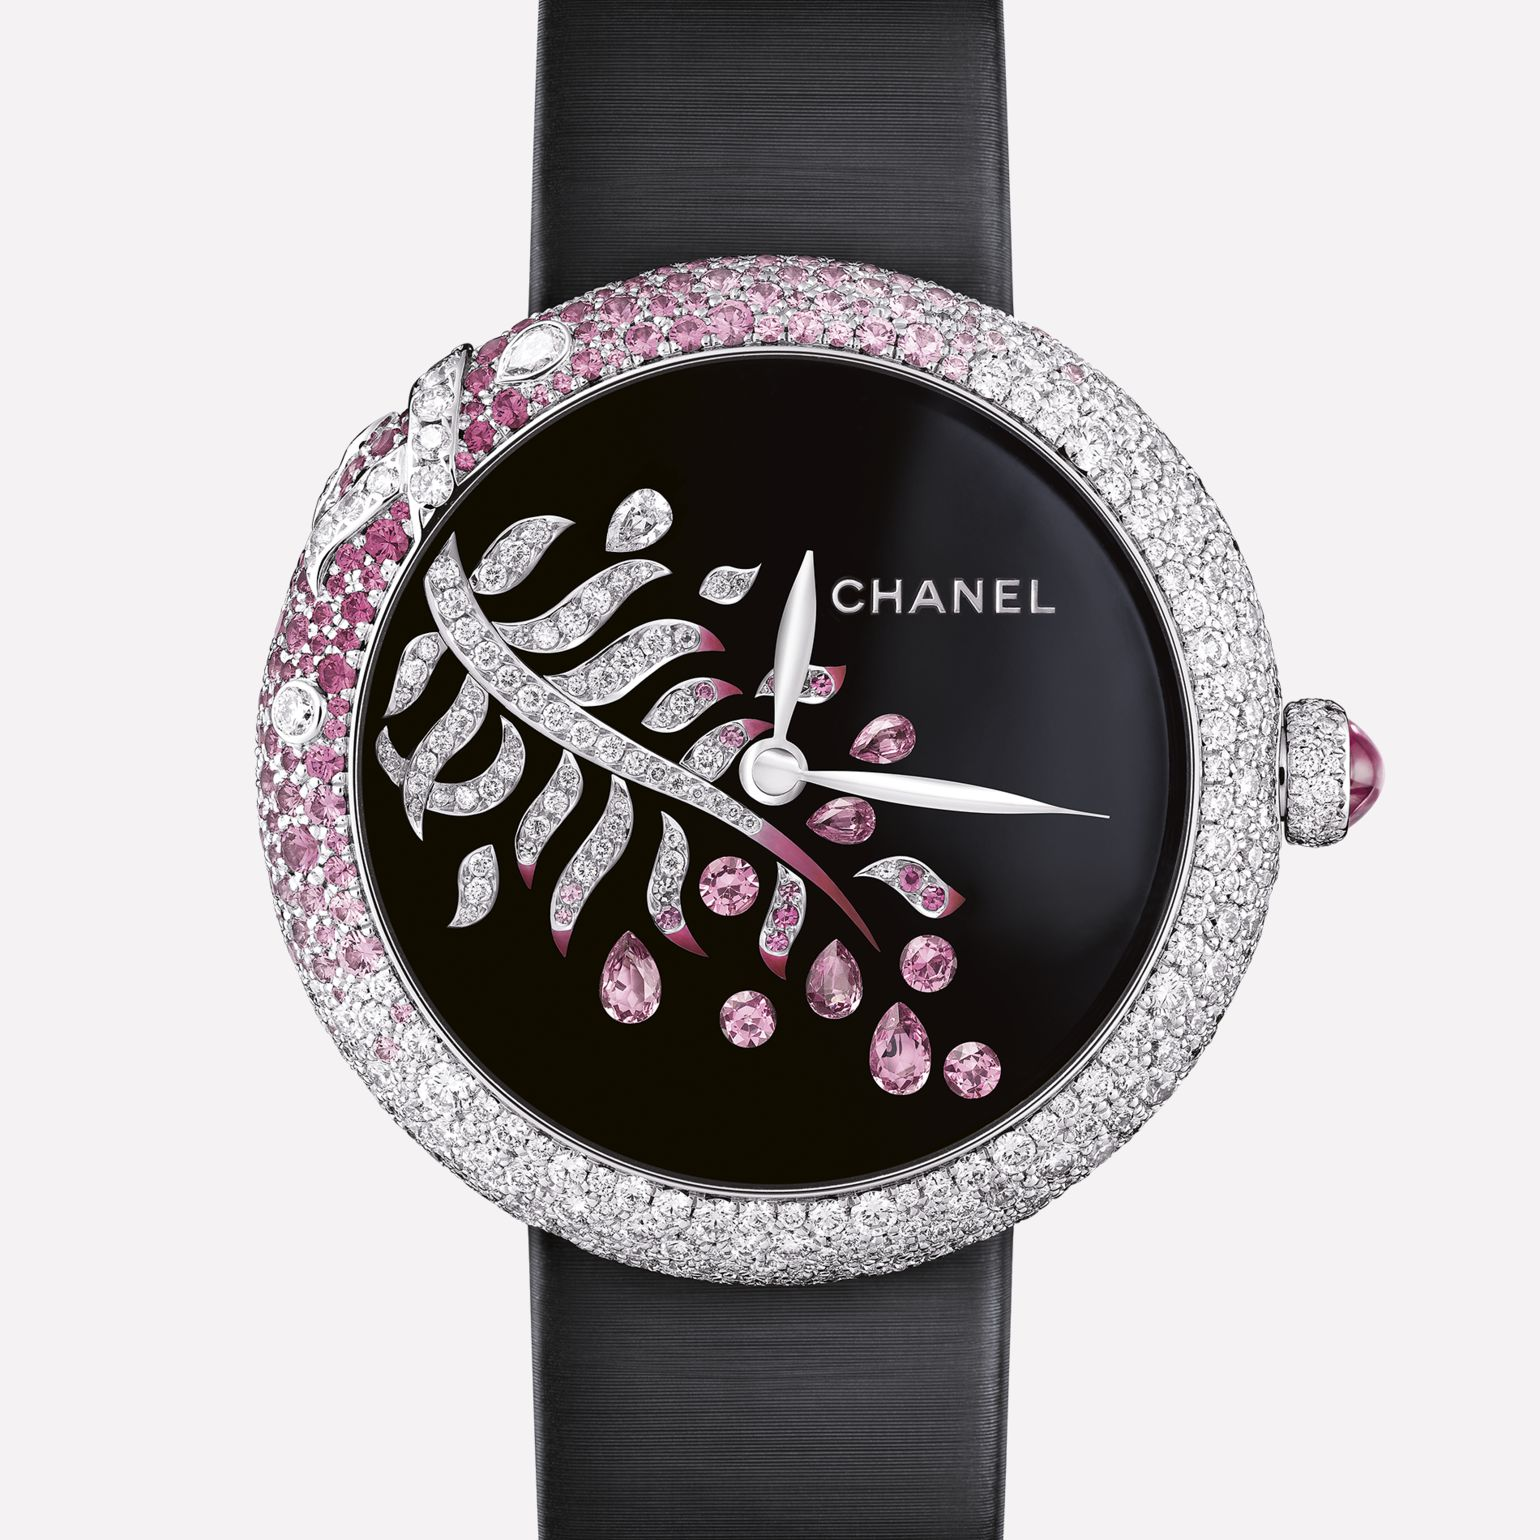 Mademoiselle Privé La Plume Enchantée - black Grand Feu enamel, diamonds and pink sapphires